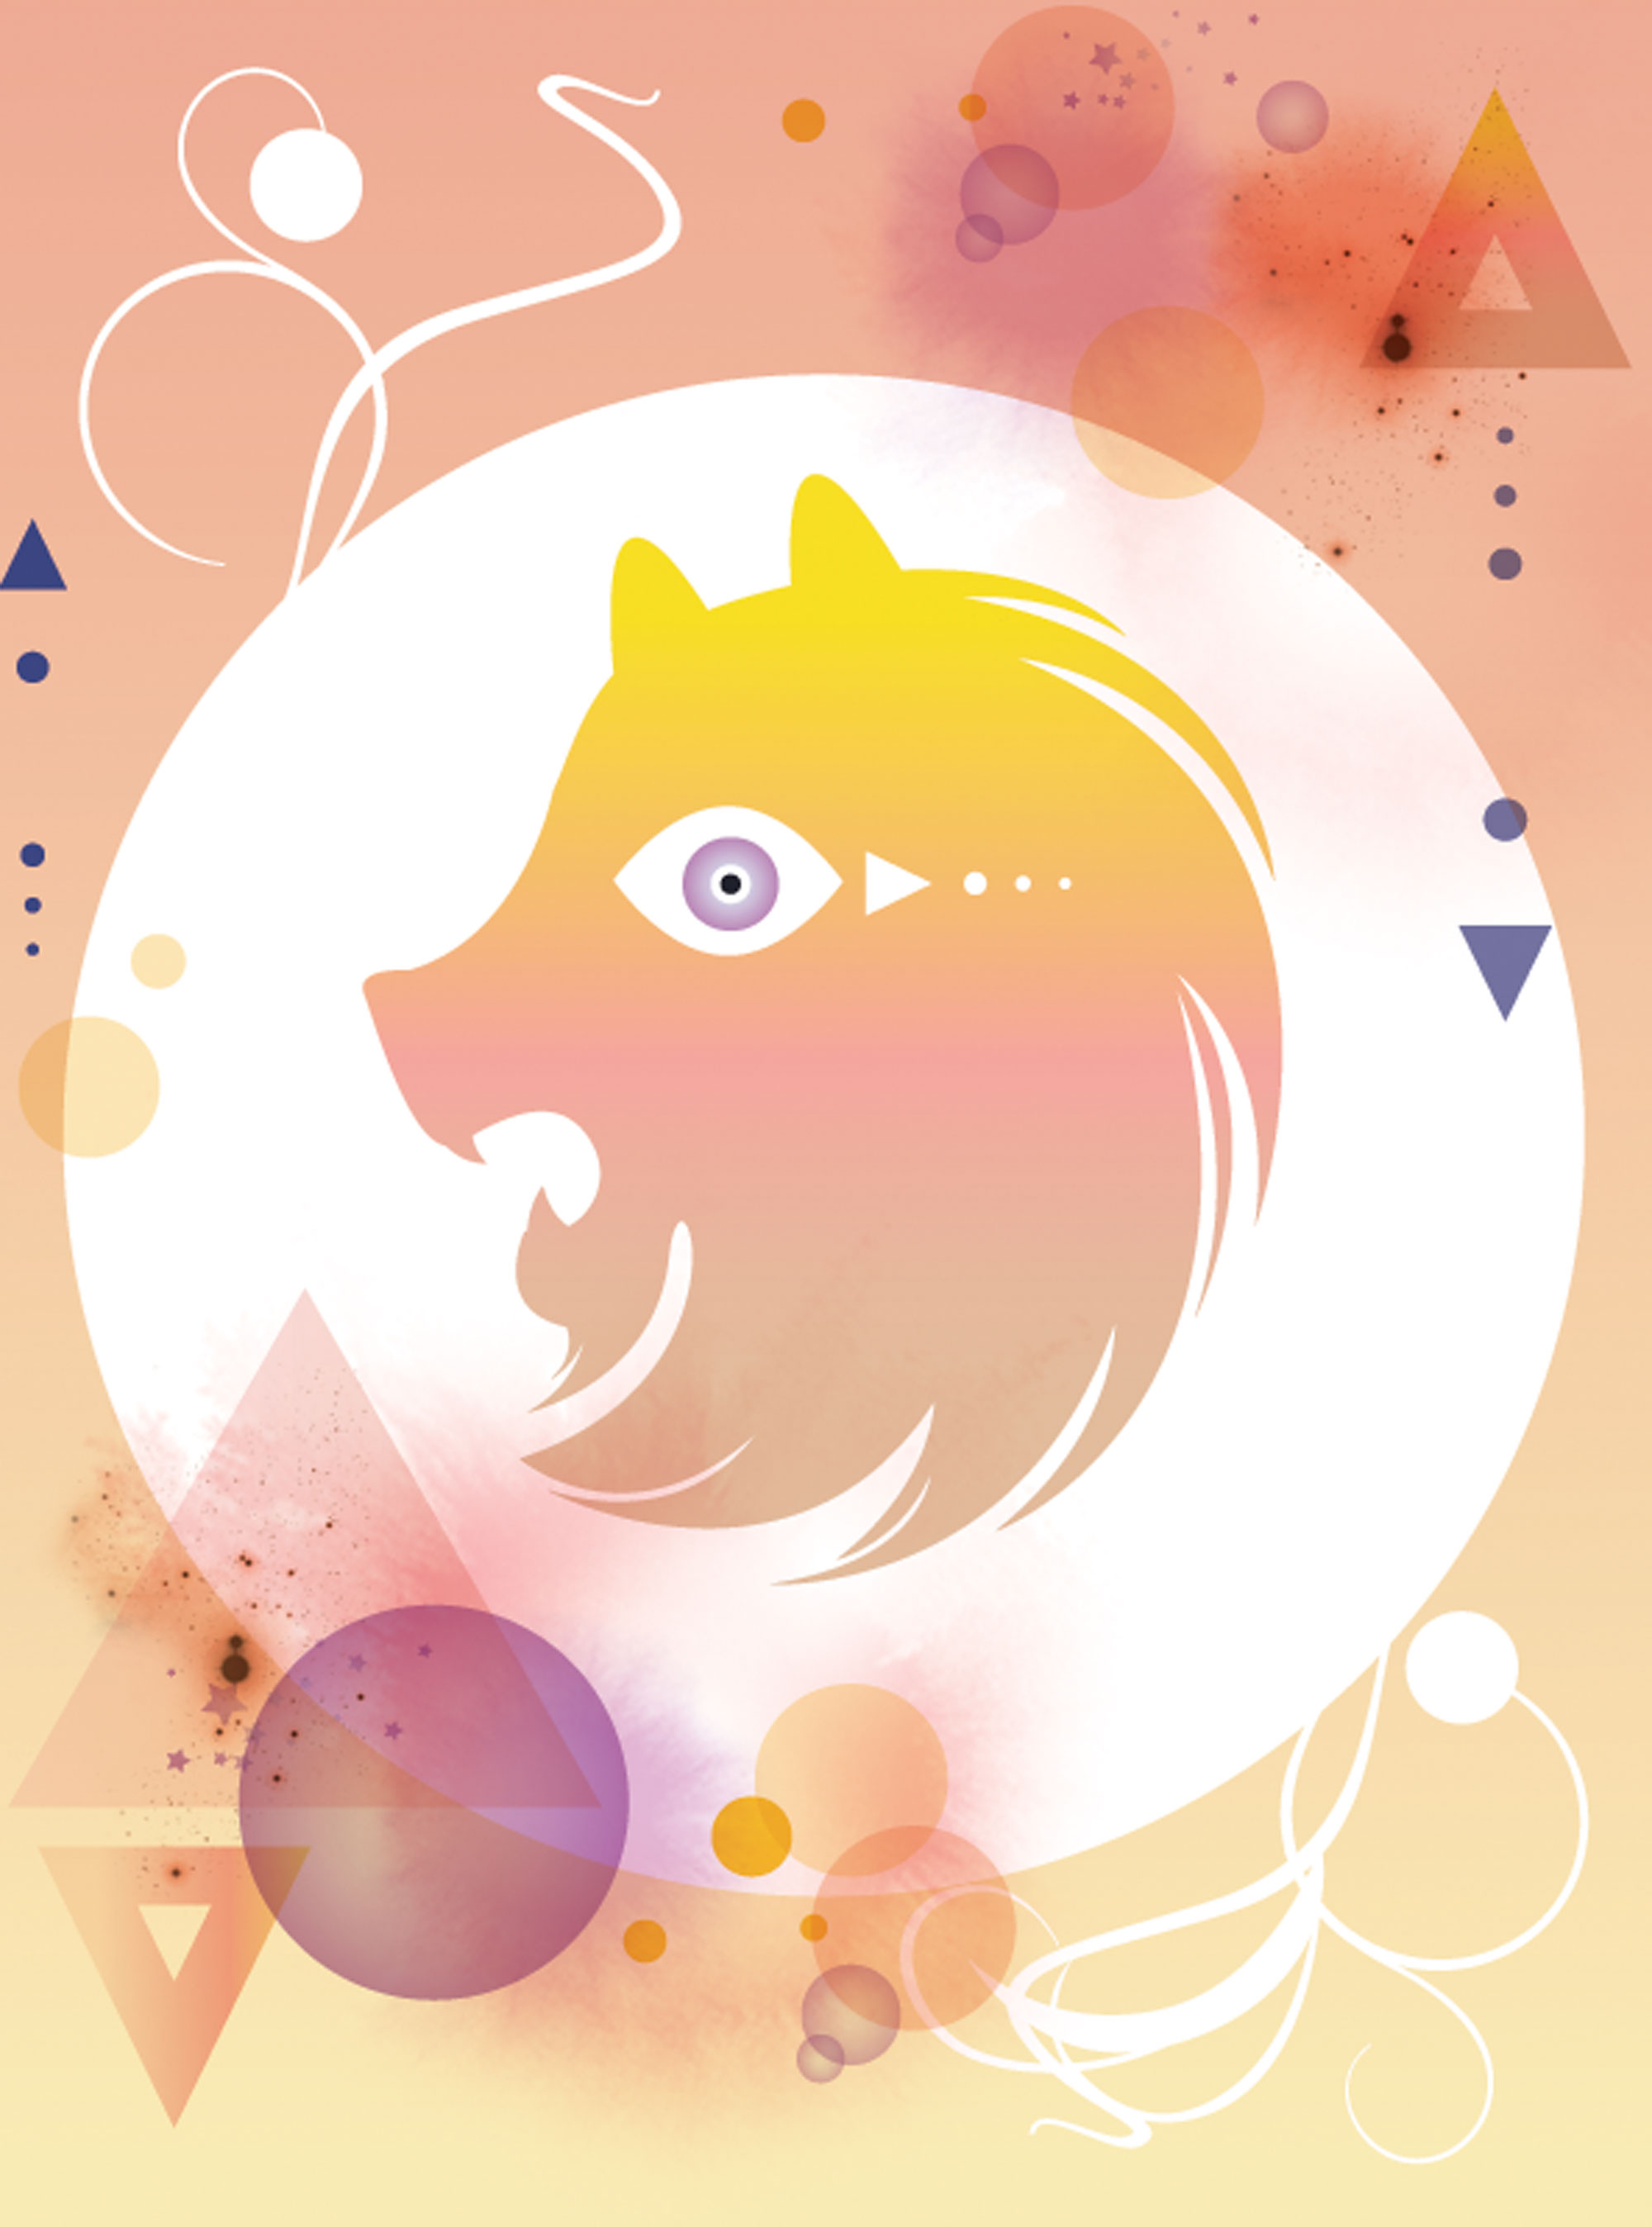 Weekly horoscope | Monday 5th August - Sunday 11th August